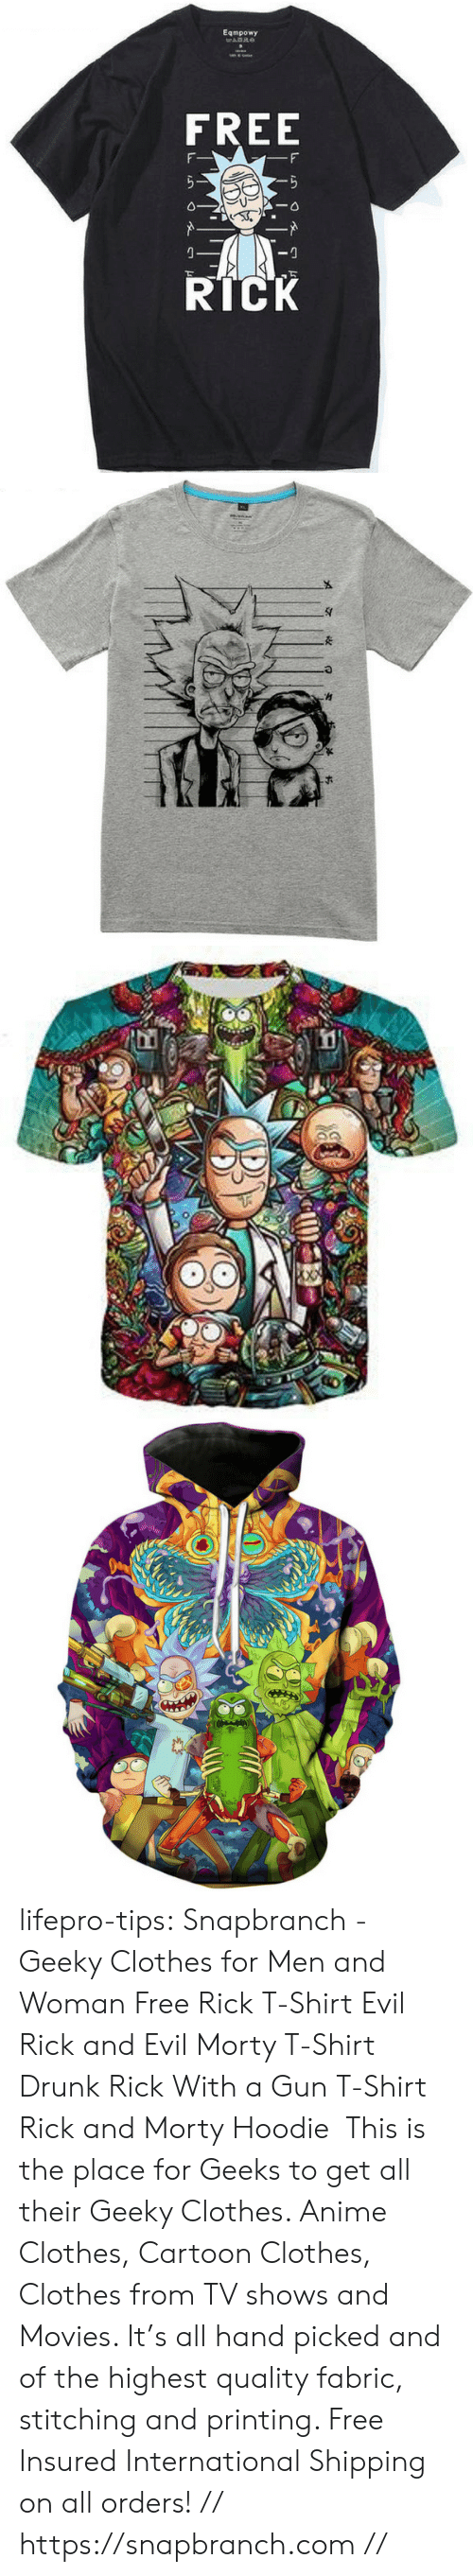 Gunman: Eqmpowy  FREE  RICK lifepro-tips:   Snapbranch  - Geeky Clothes  for Men and Woman  Free Rick T-Shirt  Evil Rick and Evil Morty T-Shirt  Drunk Rick With a Gun  T-Shirt   Rick and Morty Hoodie   This is the place for Geeks to get all their Geeky Clothes. Anime Clothes, Cartoon Clothes, Clothes from TV shows and Movies.  It's all hand picked and of the highest quality fabric, stitching and  printing. Free Insured International Shipping on all orders! // https://snapbranch.com //